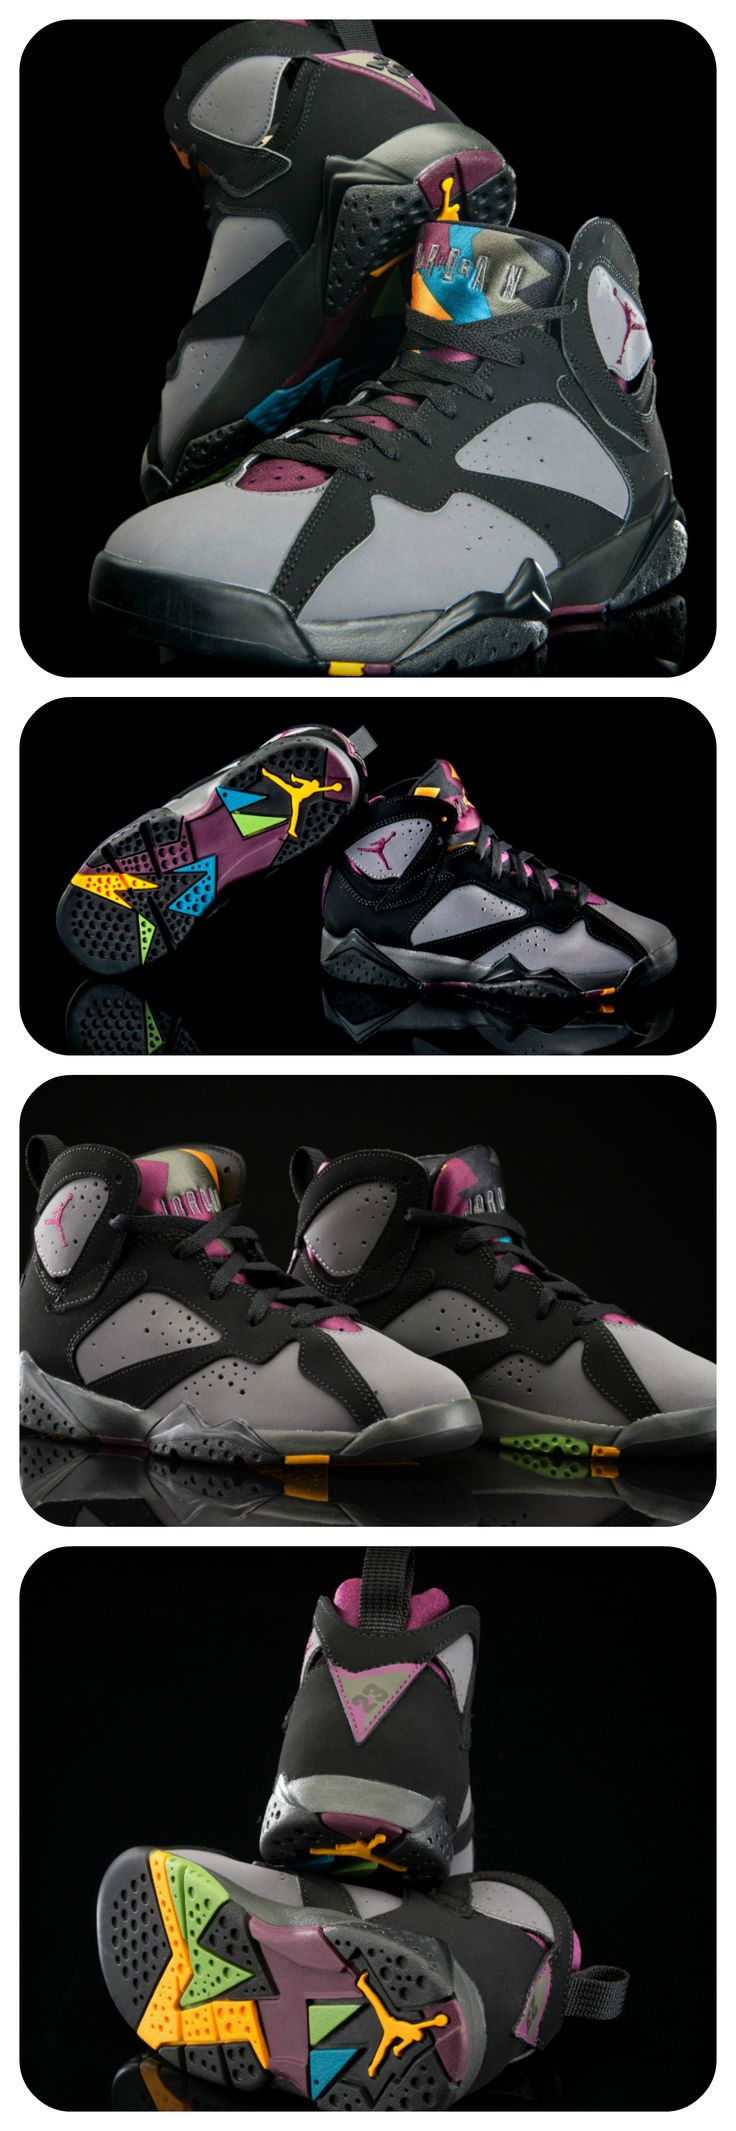 The Jordan Retro 7 'Bordeaux' just dropped in sizes for the whole family.